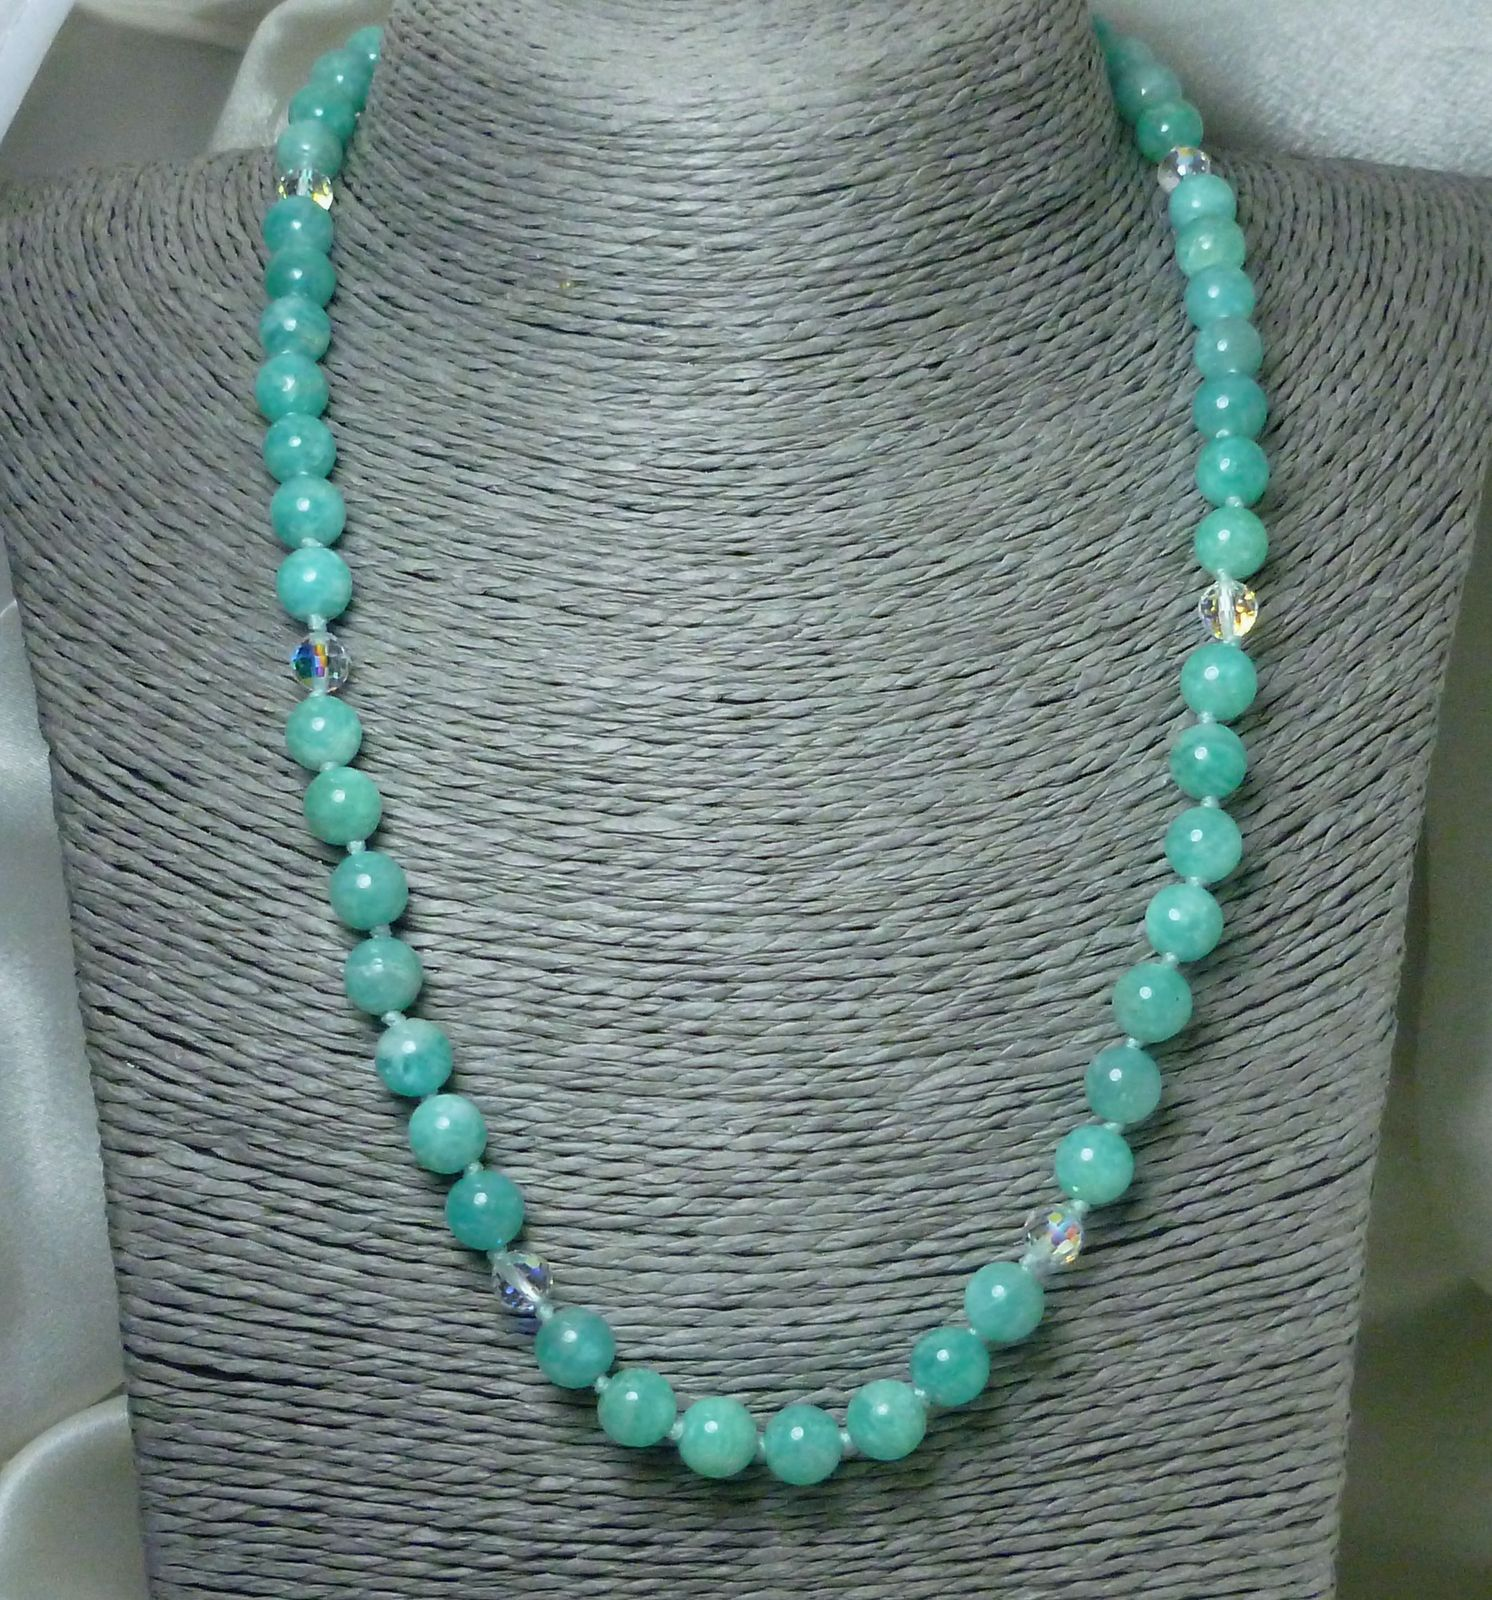 Peruvian Amazonite Round Gemstone and Crystal Necklace 19 inch